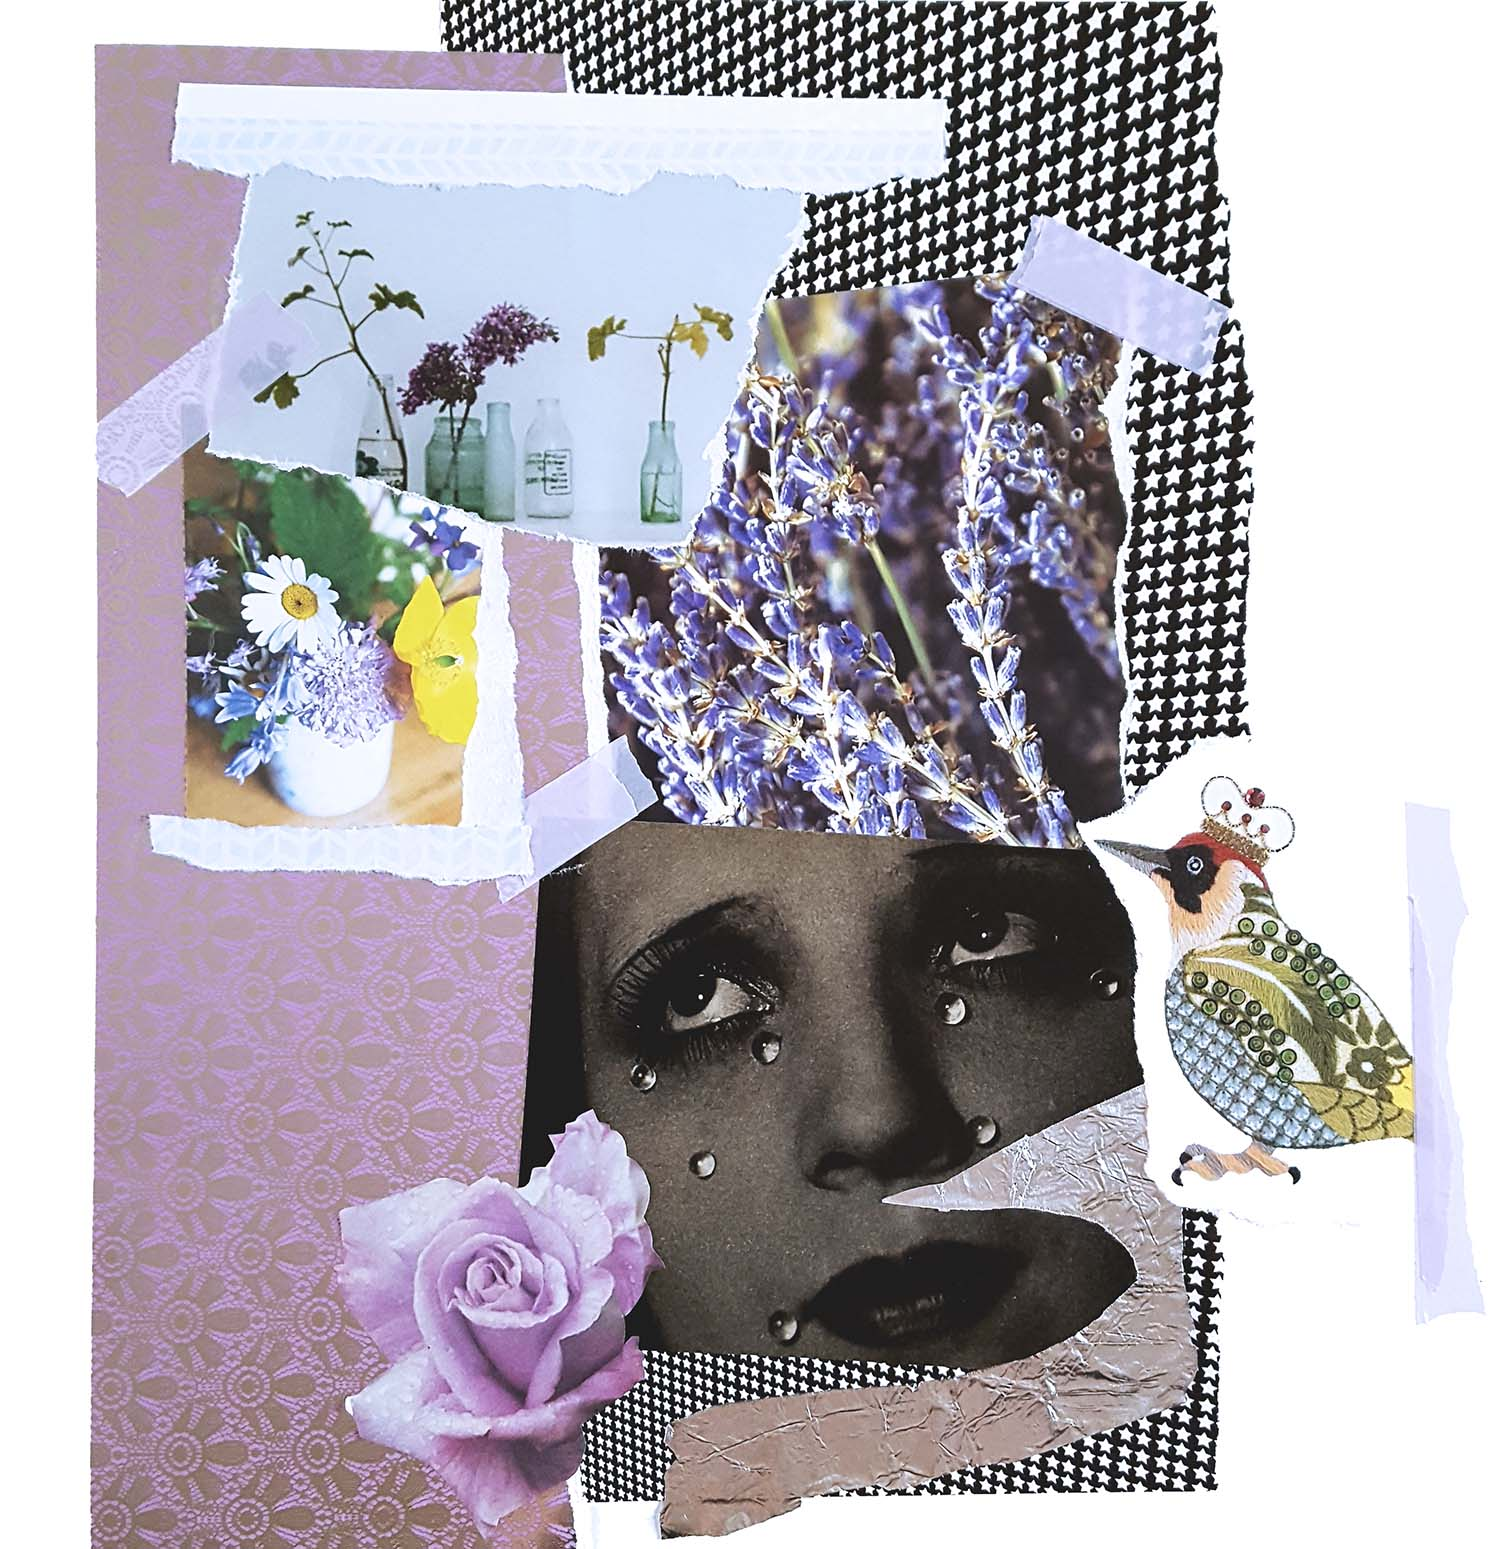 'PURPLE REIGN' colour-themed collage